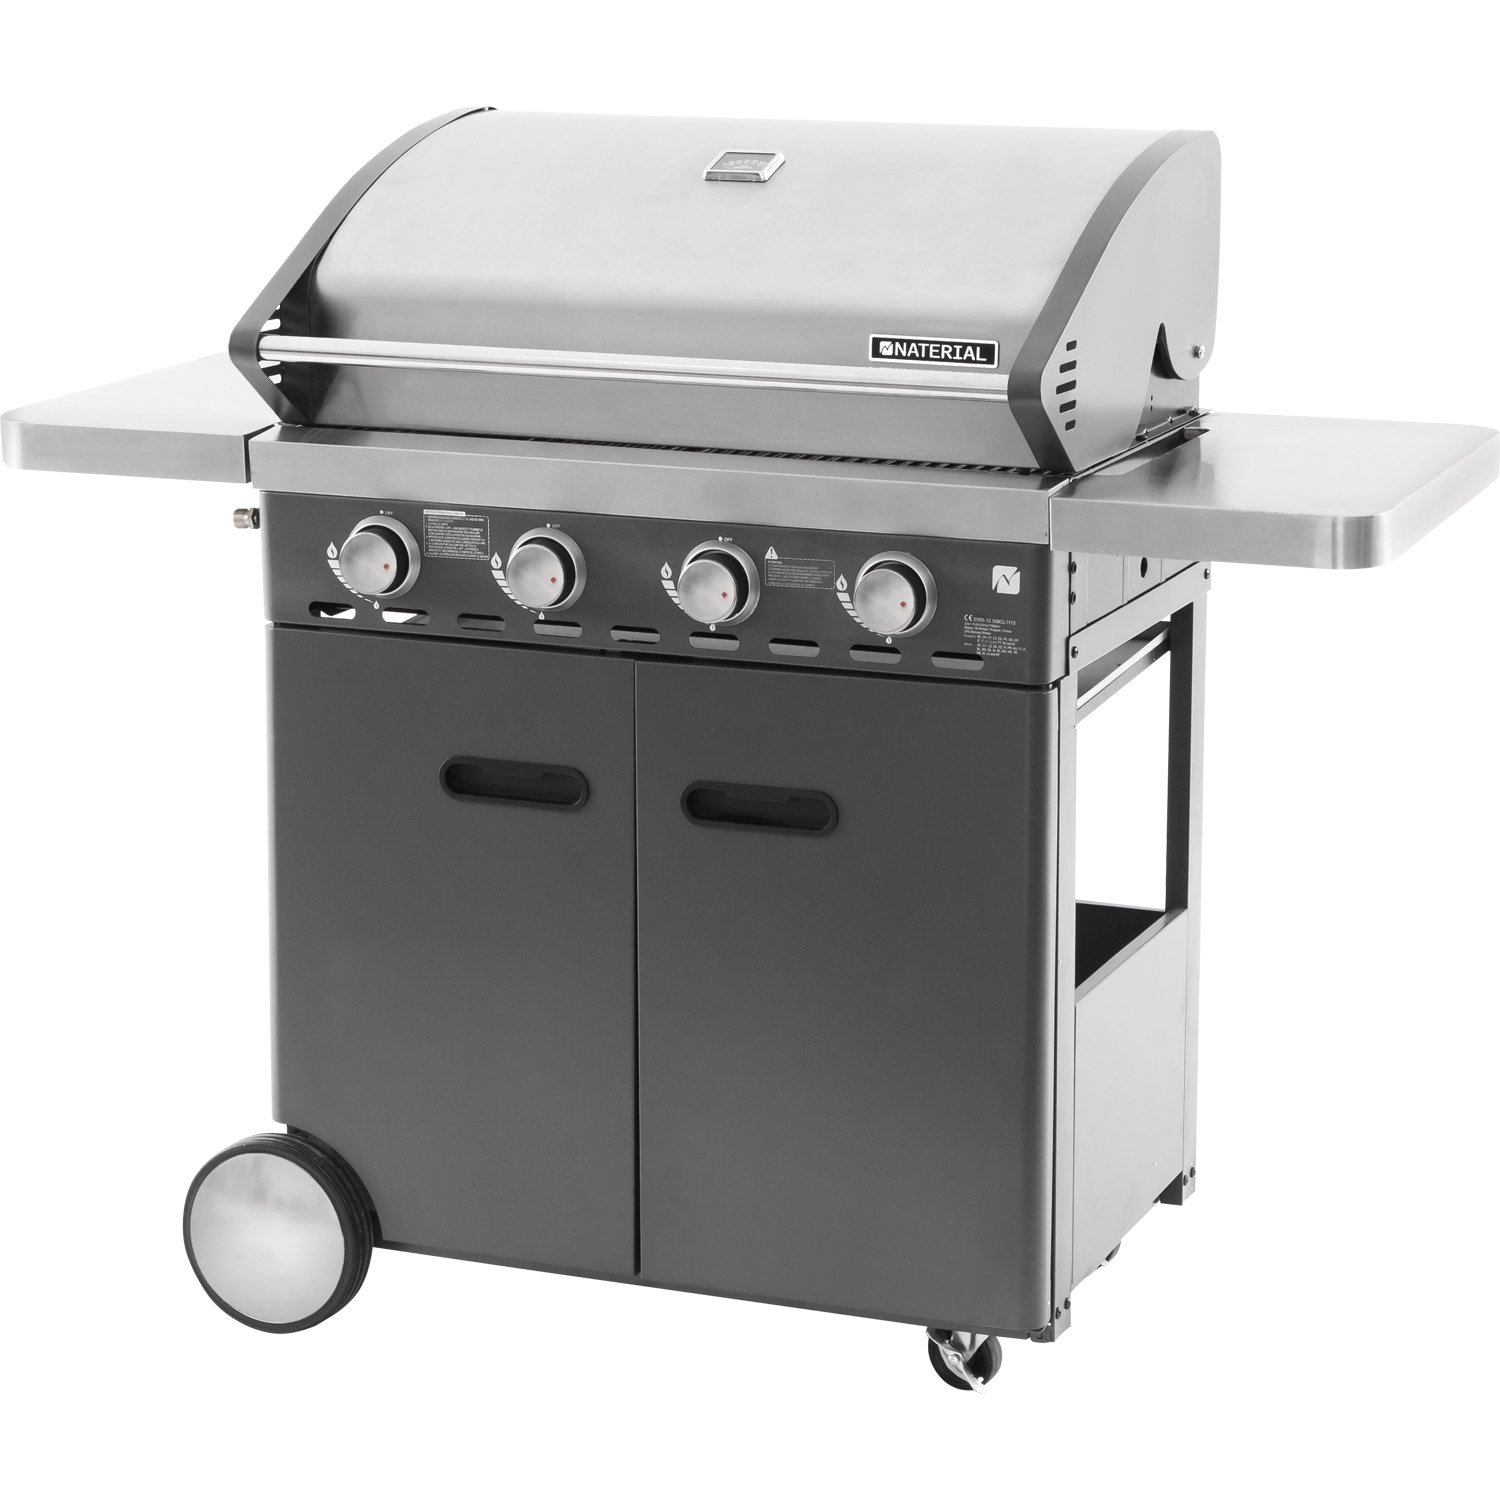 barbecue naterial